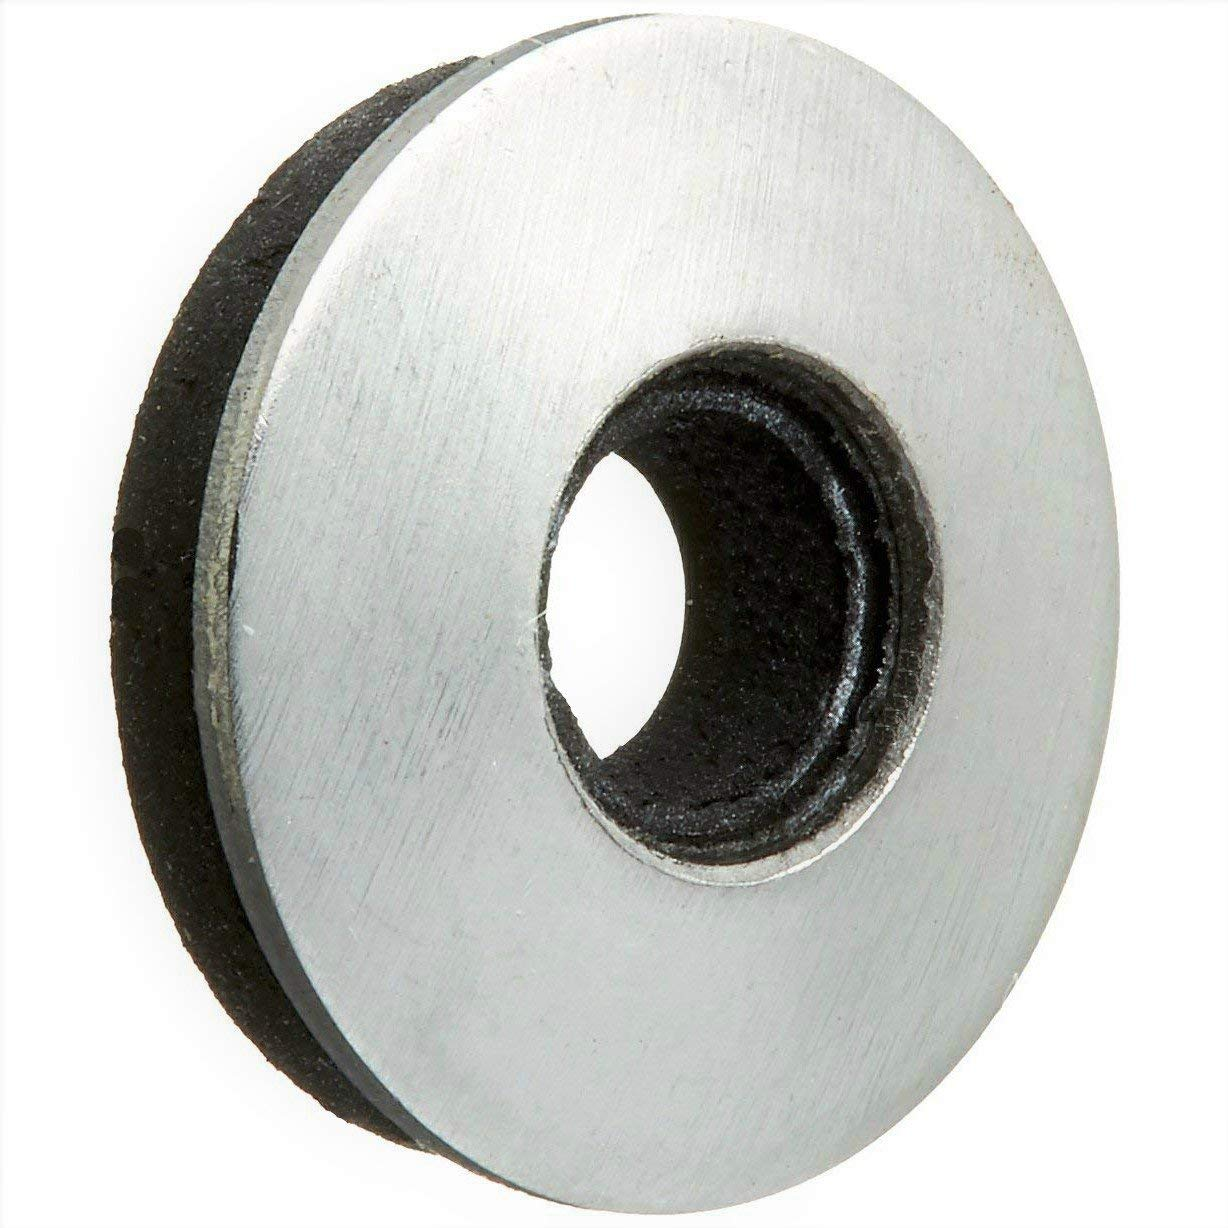 100 New popularity Qty #6 Cheap mail order specialty store Stainless Steel EPDM Bonded W Sealing Rubber Neoprene